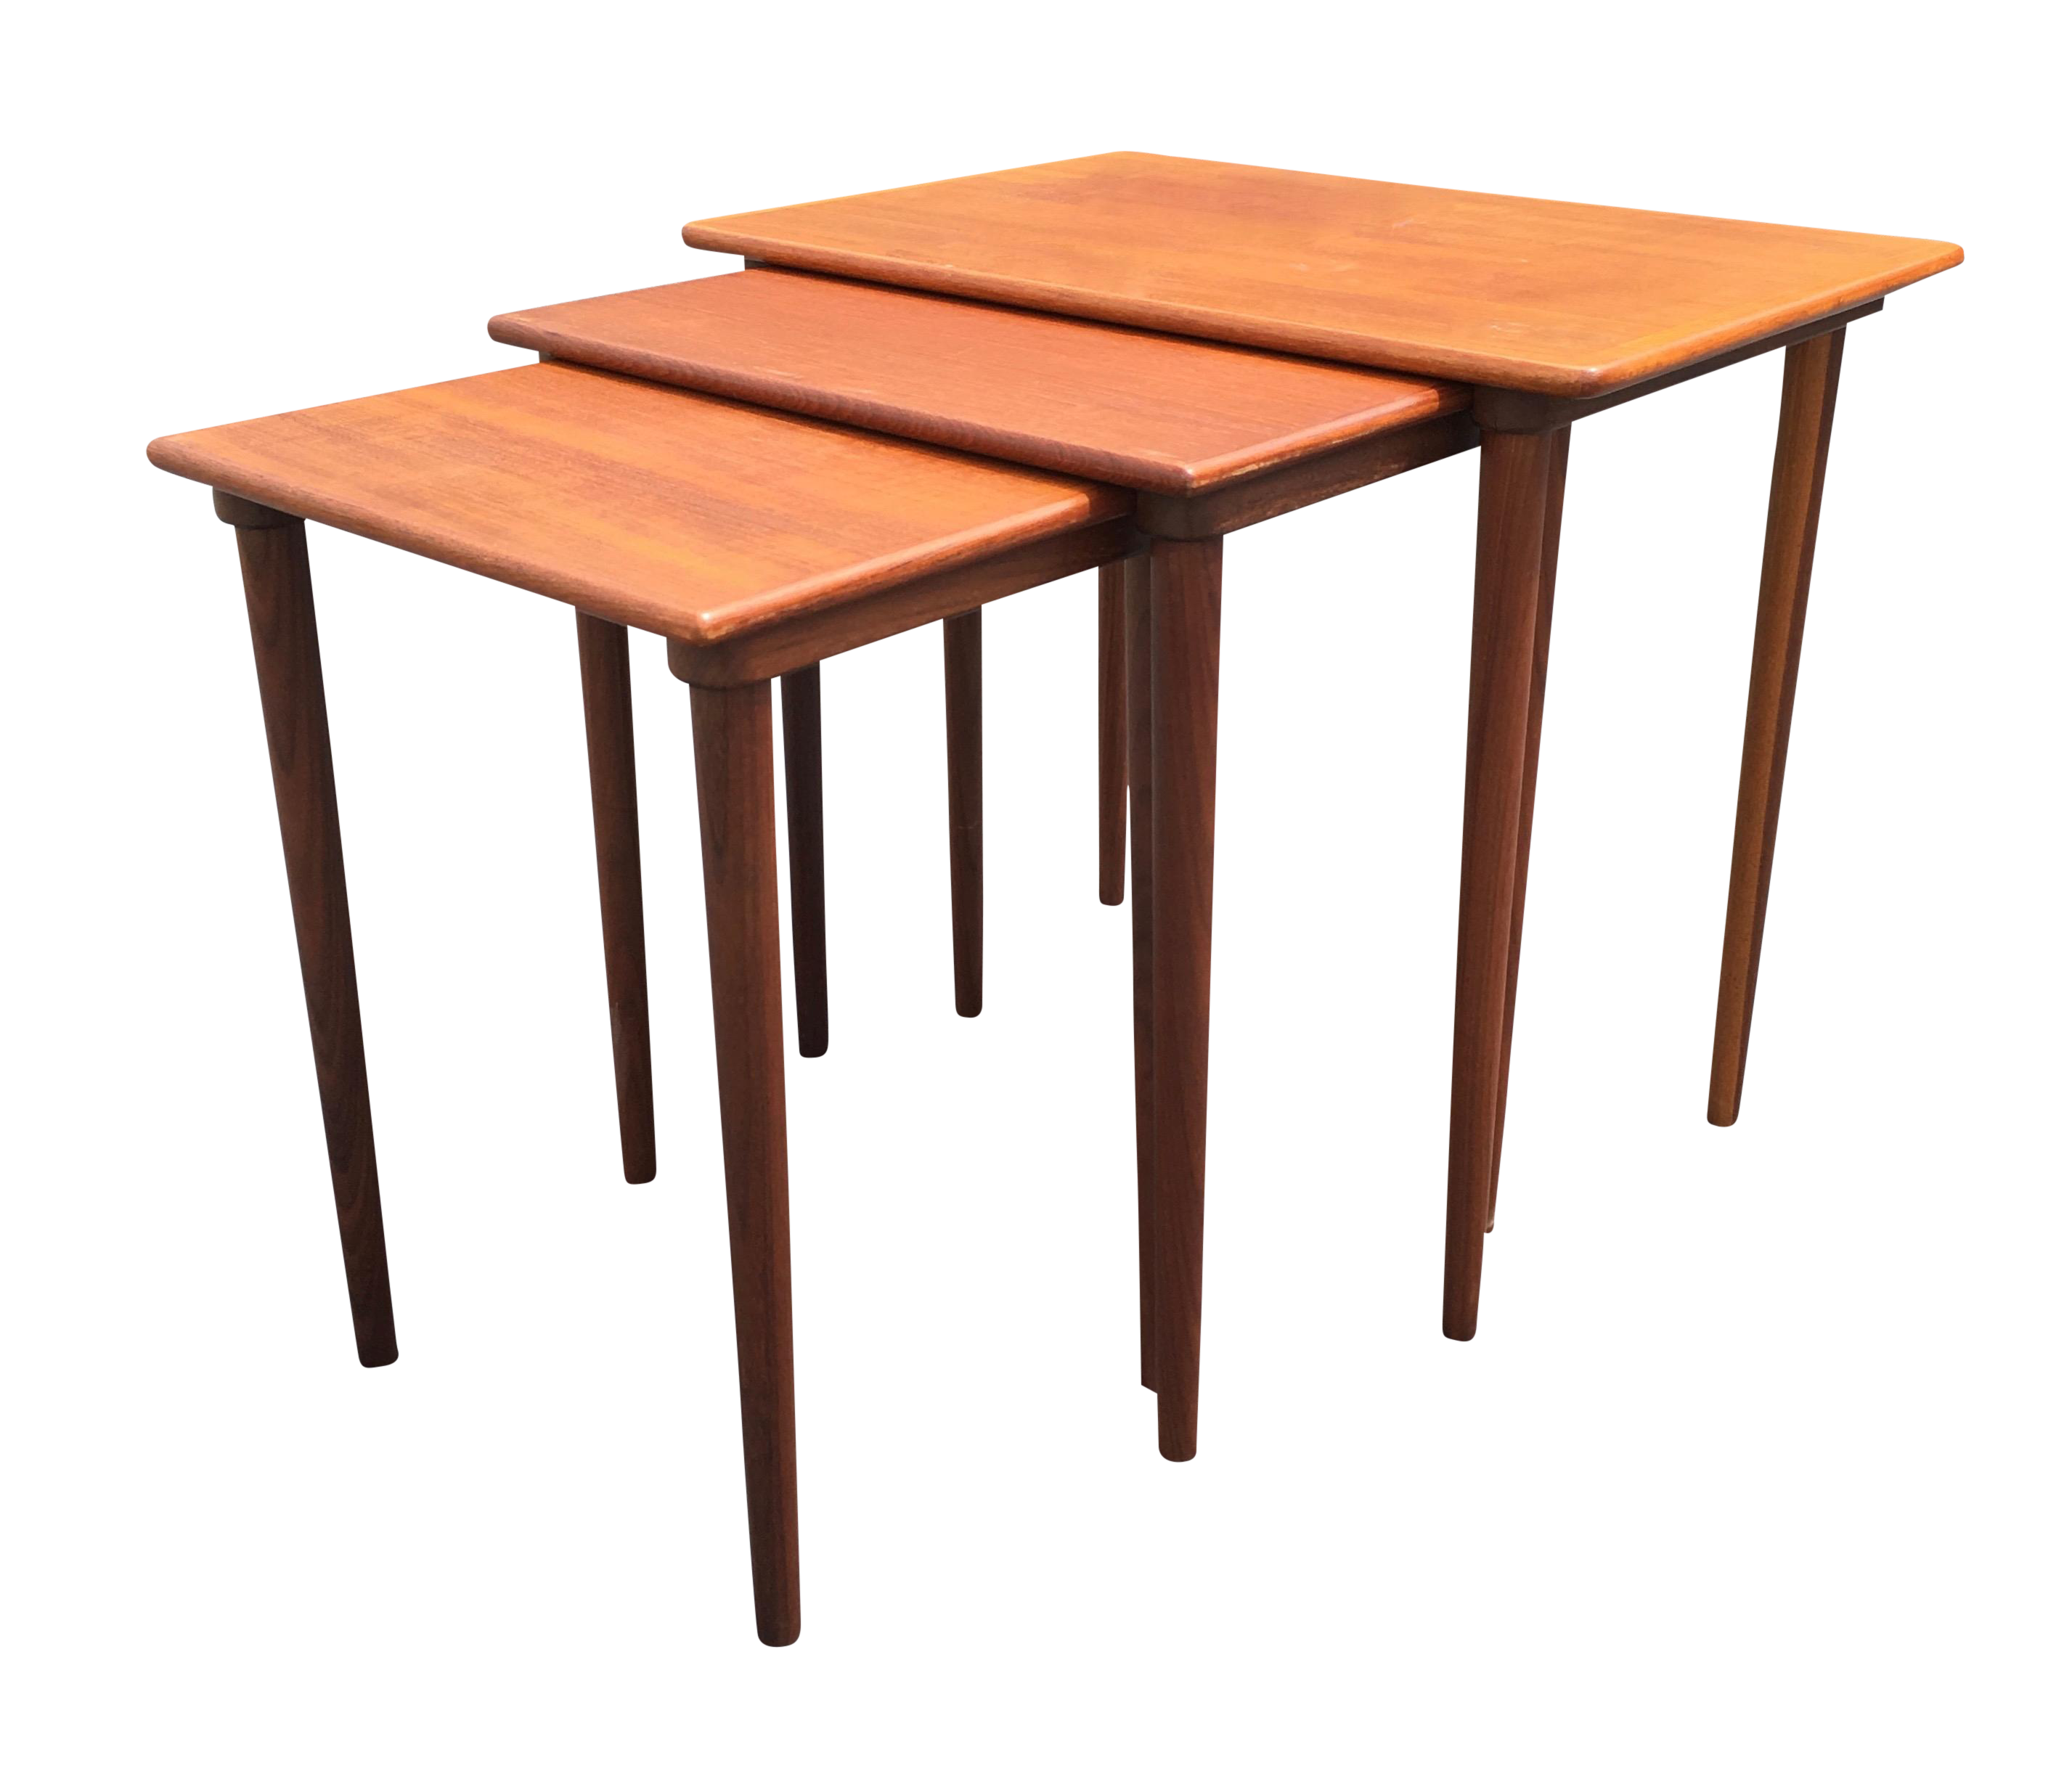 Madsen Danish Modern Nesting Tables Set Of 3 Chairish. Full resolution  image, nominally Width 2854 Height 2462 pixels, image with #C35A08.